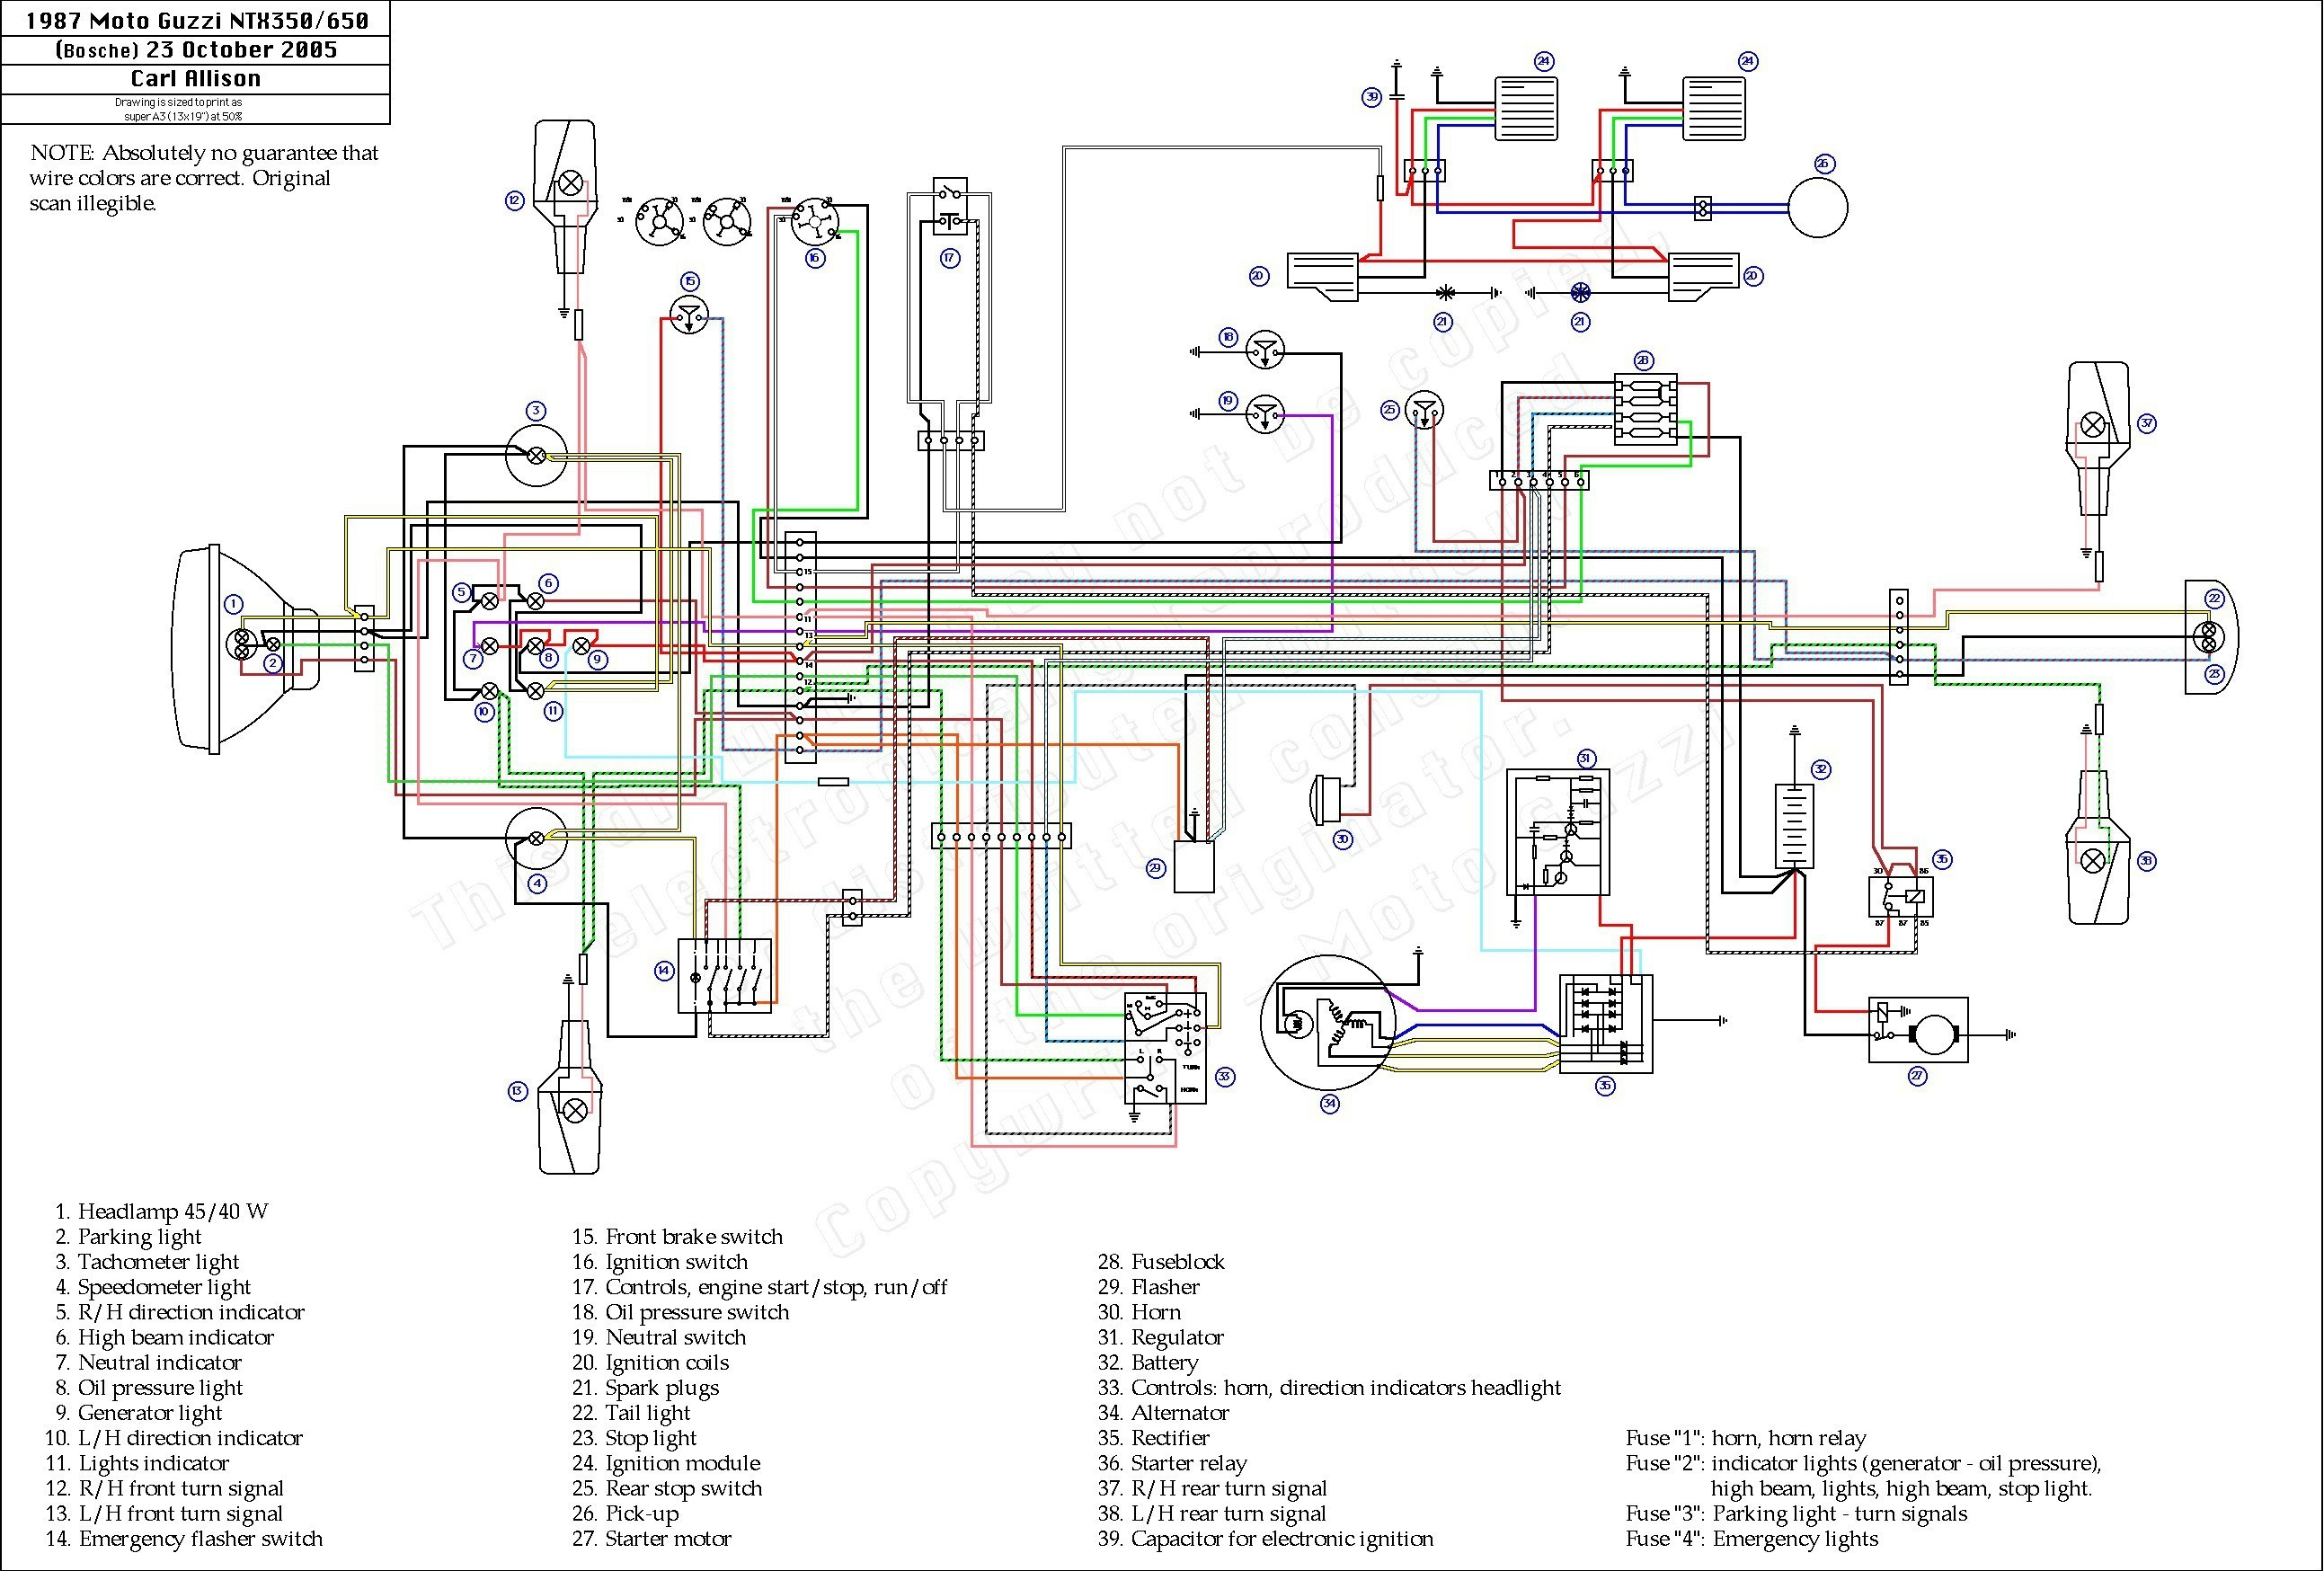 110cc wiring schematic wiring diagram Tao Tao 110 ATV Parts Diagram sunl 110 atv wiring diagramhight resolution of sunl 110cc wiring diagram wiring library rh 26 codingcommunity